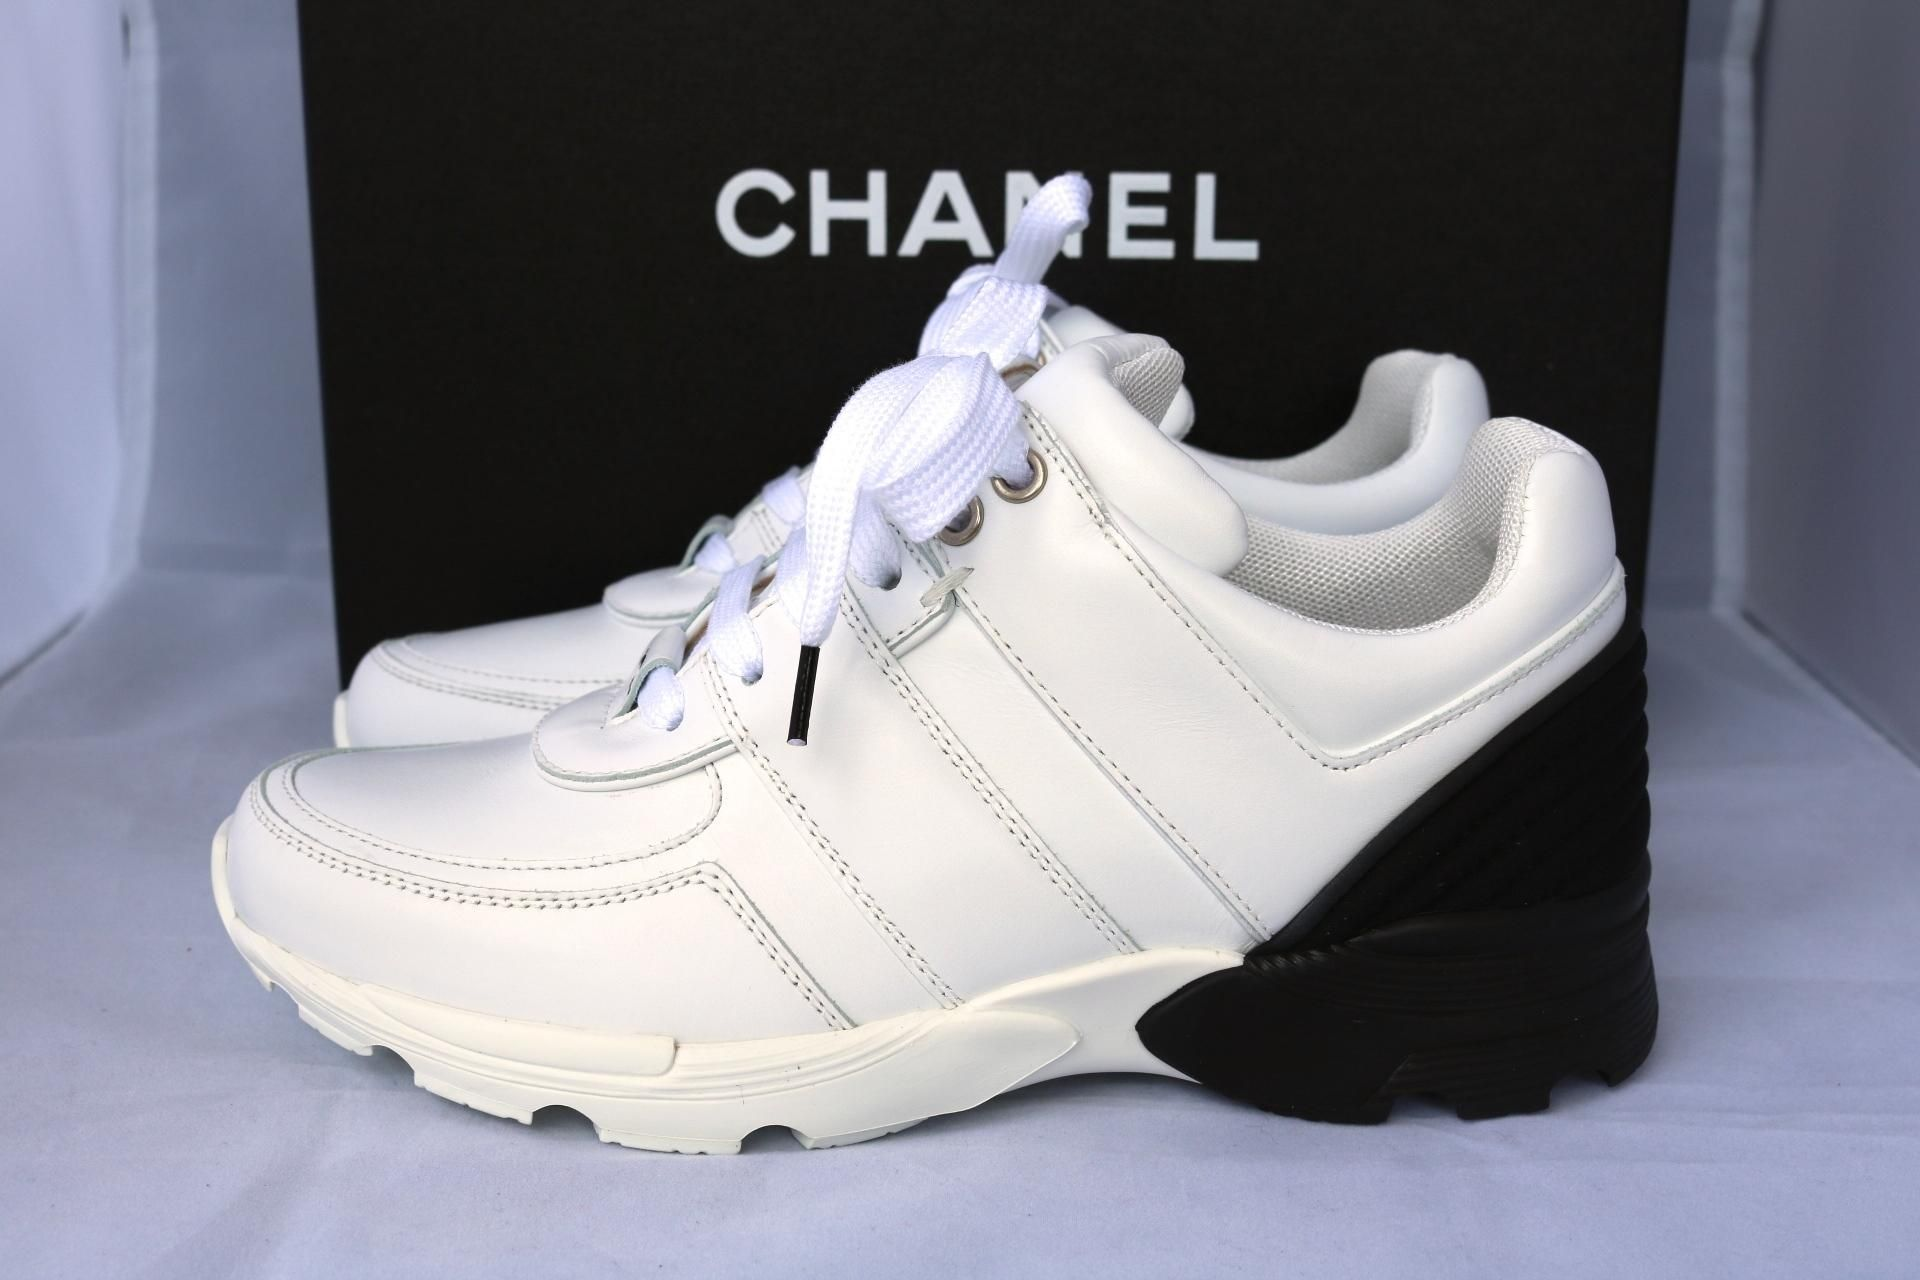 Chanel Black Leather Mesh Sneakers Tennis Trainers 35 White Athletic Shoes.  Get the must-